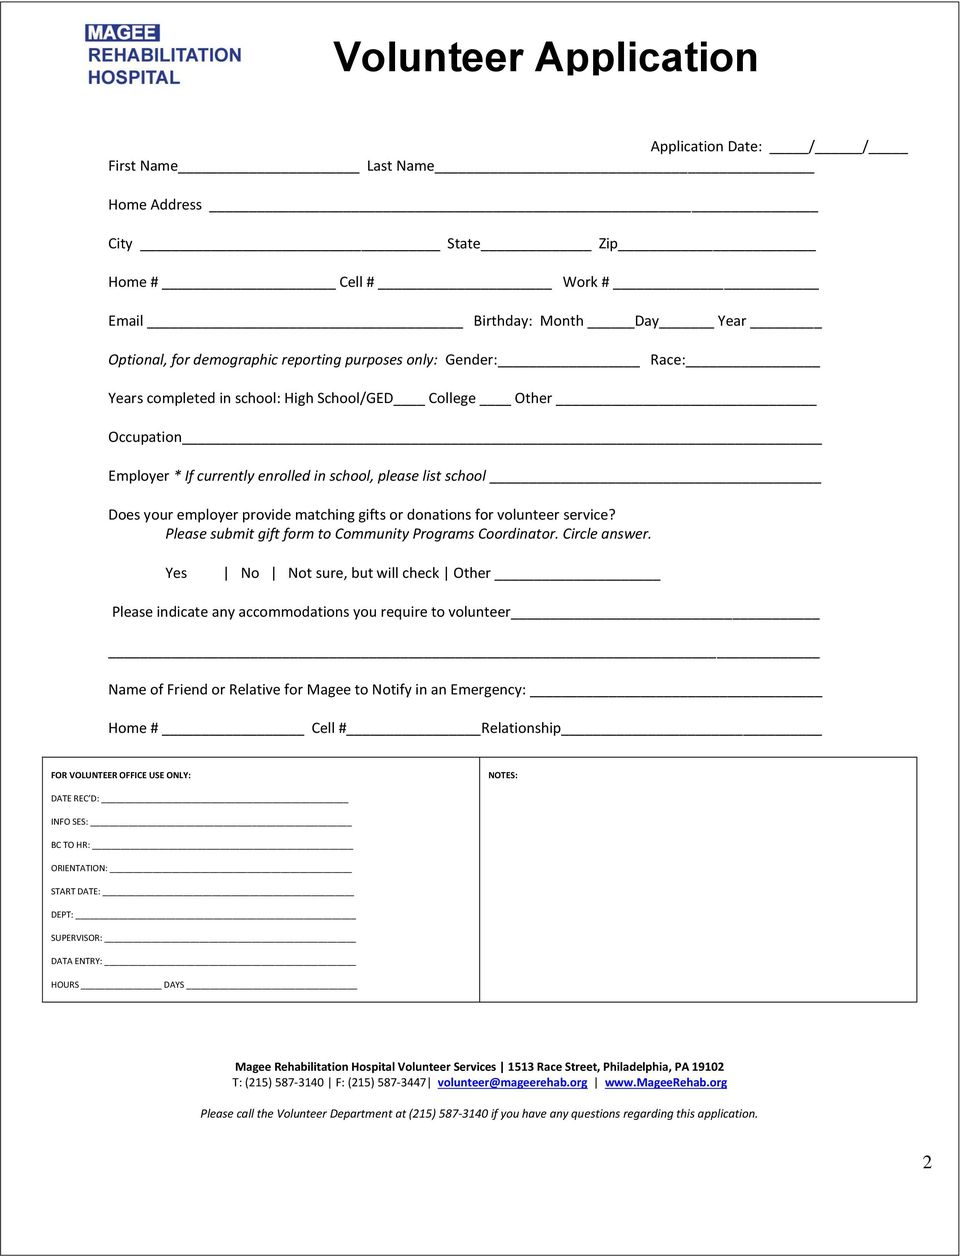 service? Please submit gift form to Community Programs Coordinator. Circle answer.